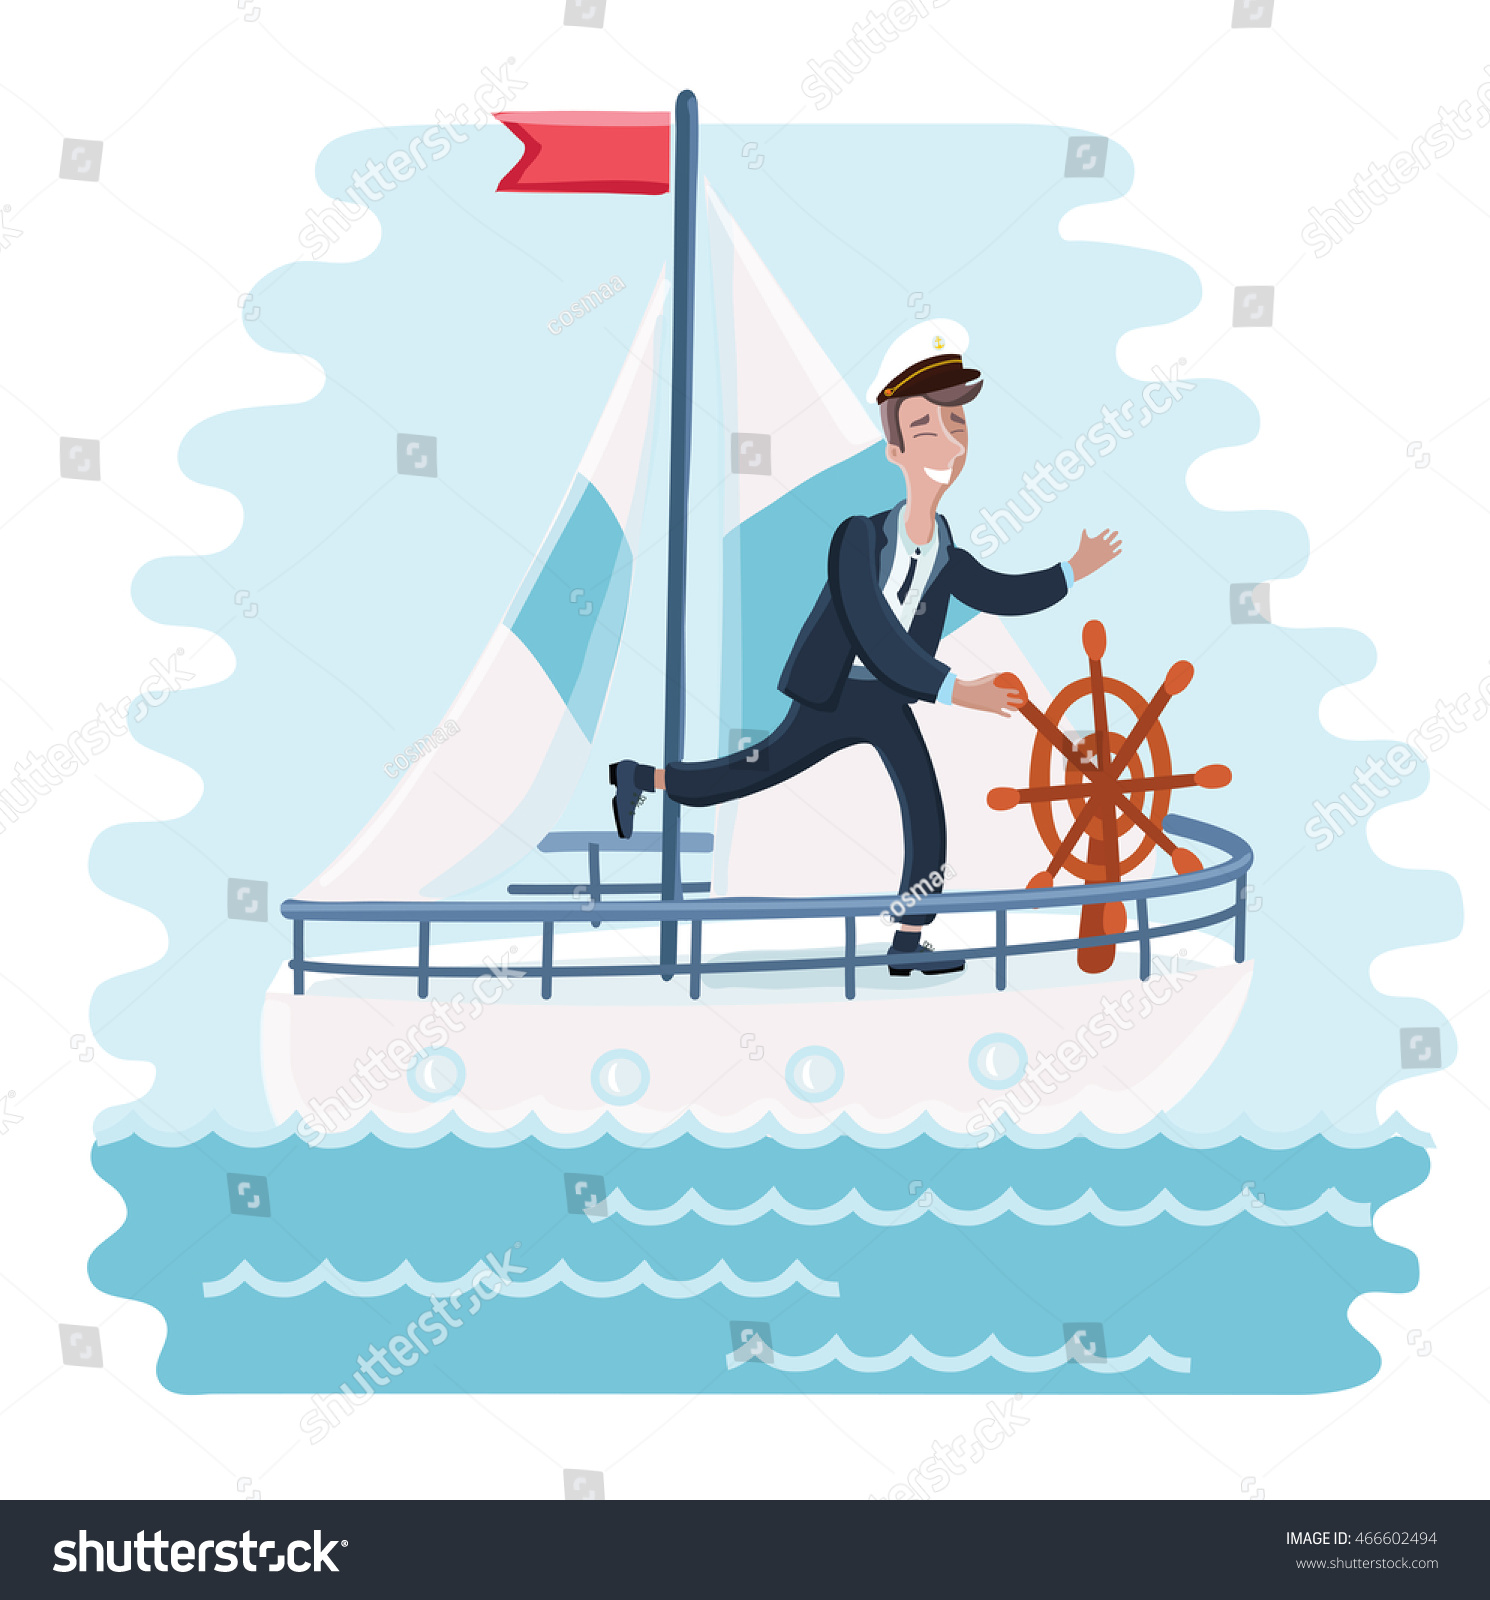 Vector illustration of cartoon captain spinning wheel and steers the ship into the sea